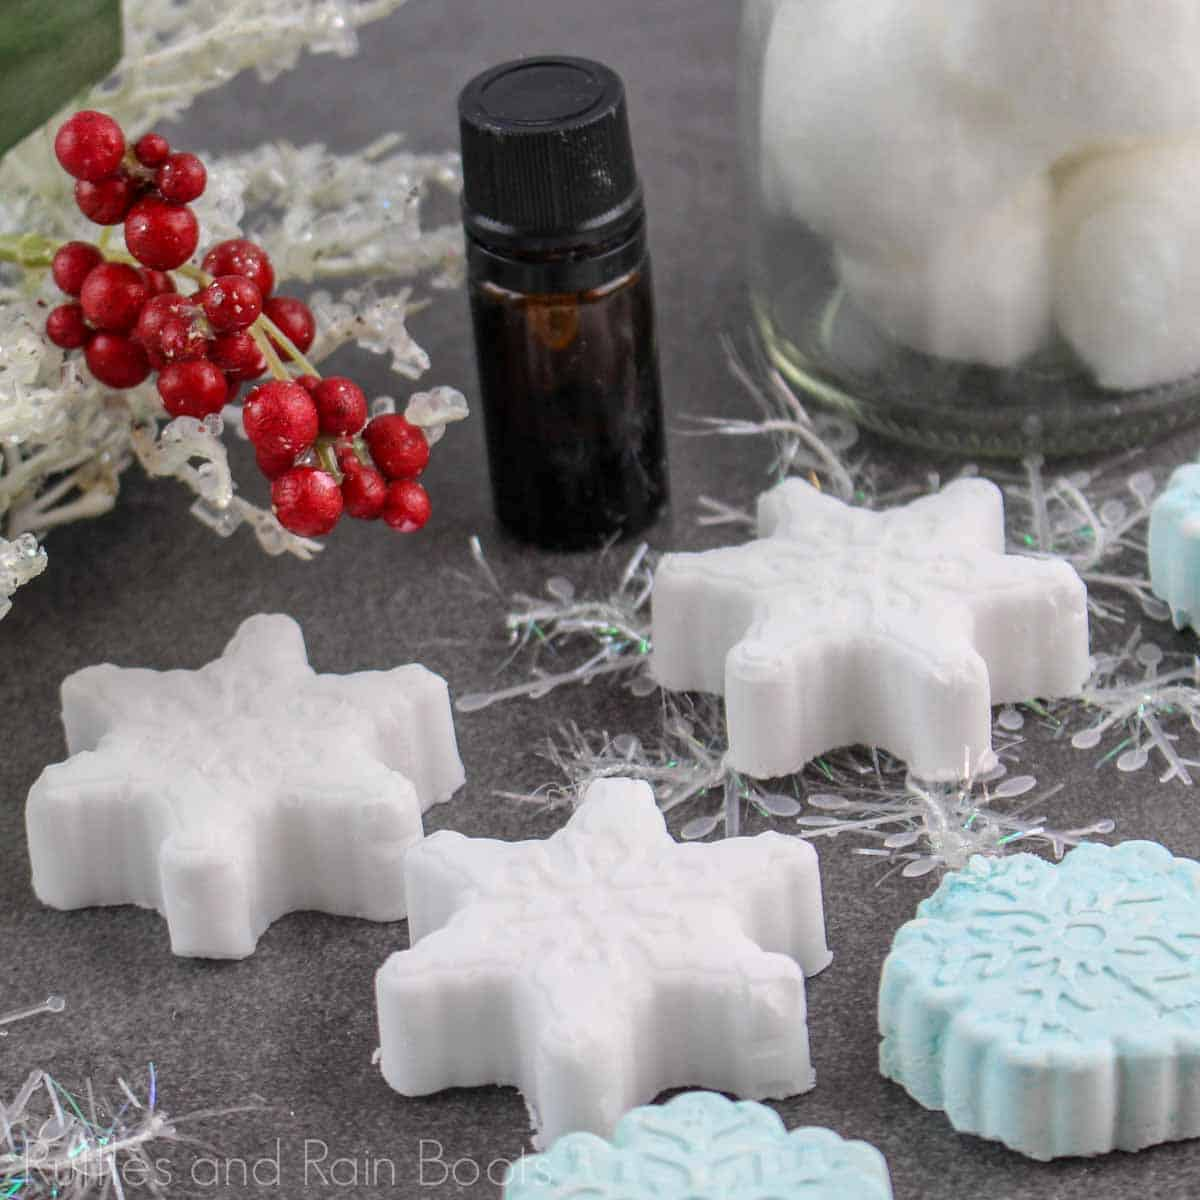 This Snowflake Shower Fizzy is the Perfect DIY Gift